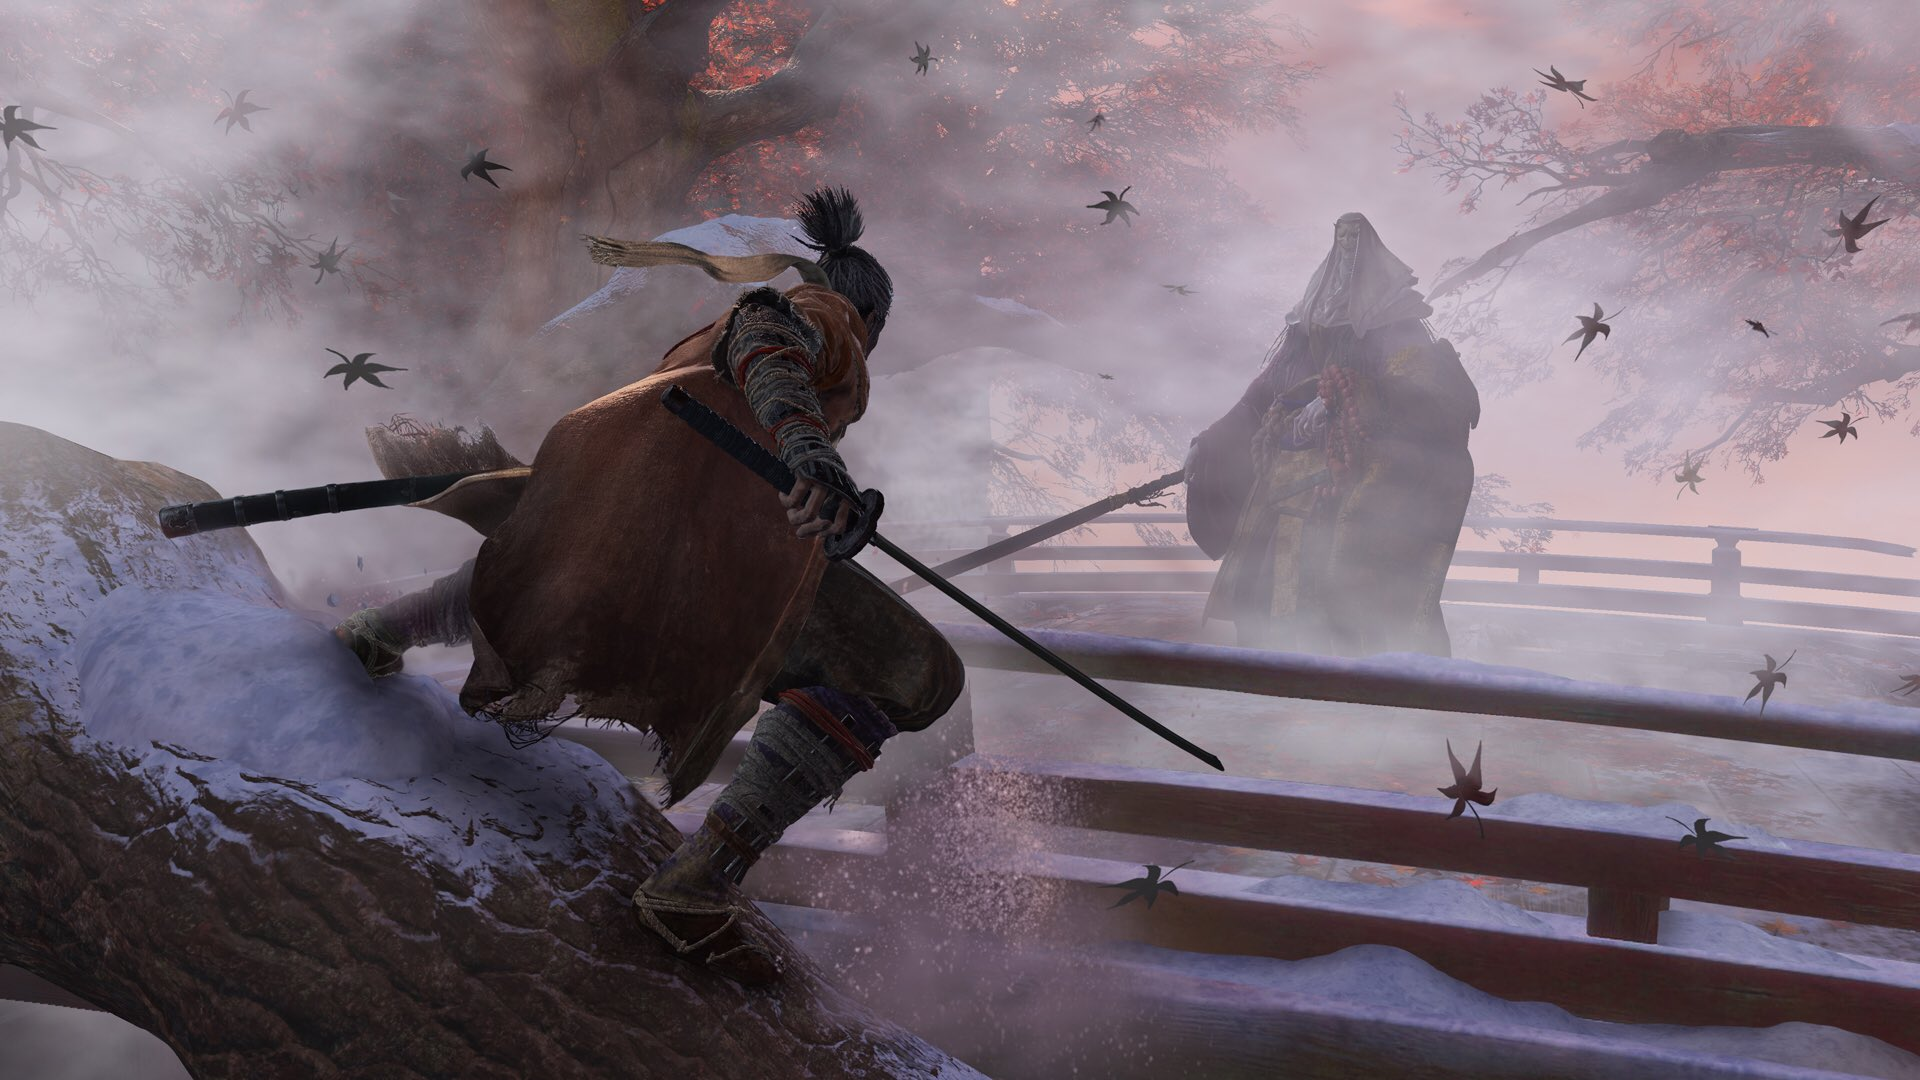 To use Fast Travel in Sekiro: Shadows Die Twice, you'll want to visit and rest at Sculptor's Idols throughout the game as these act as save points which you can then use to move between areas.